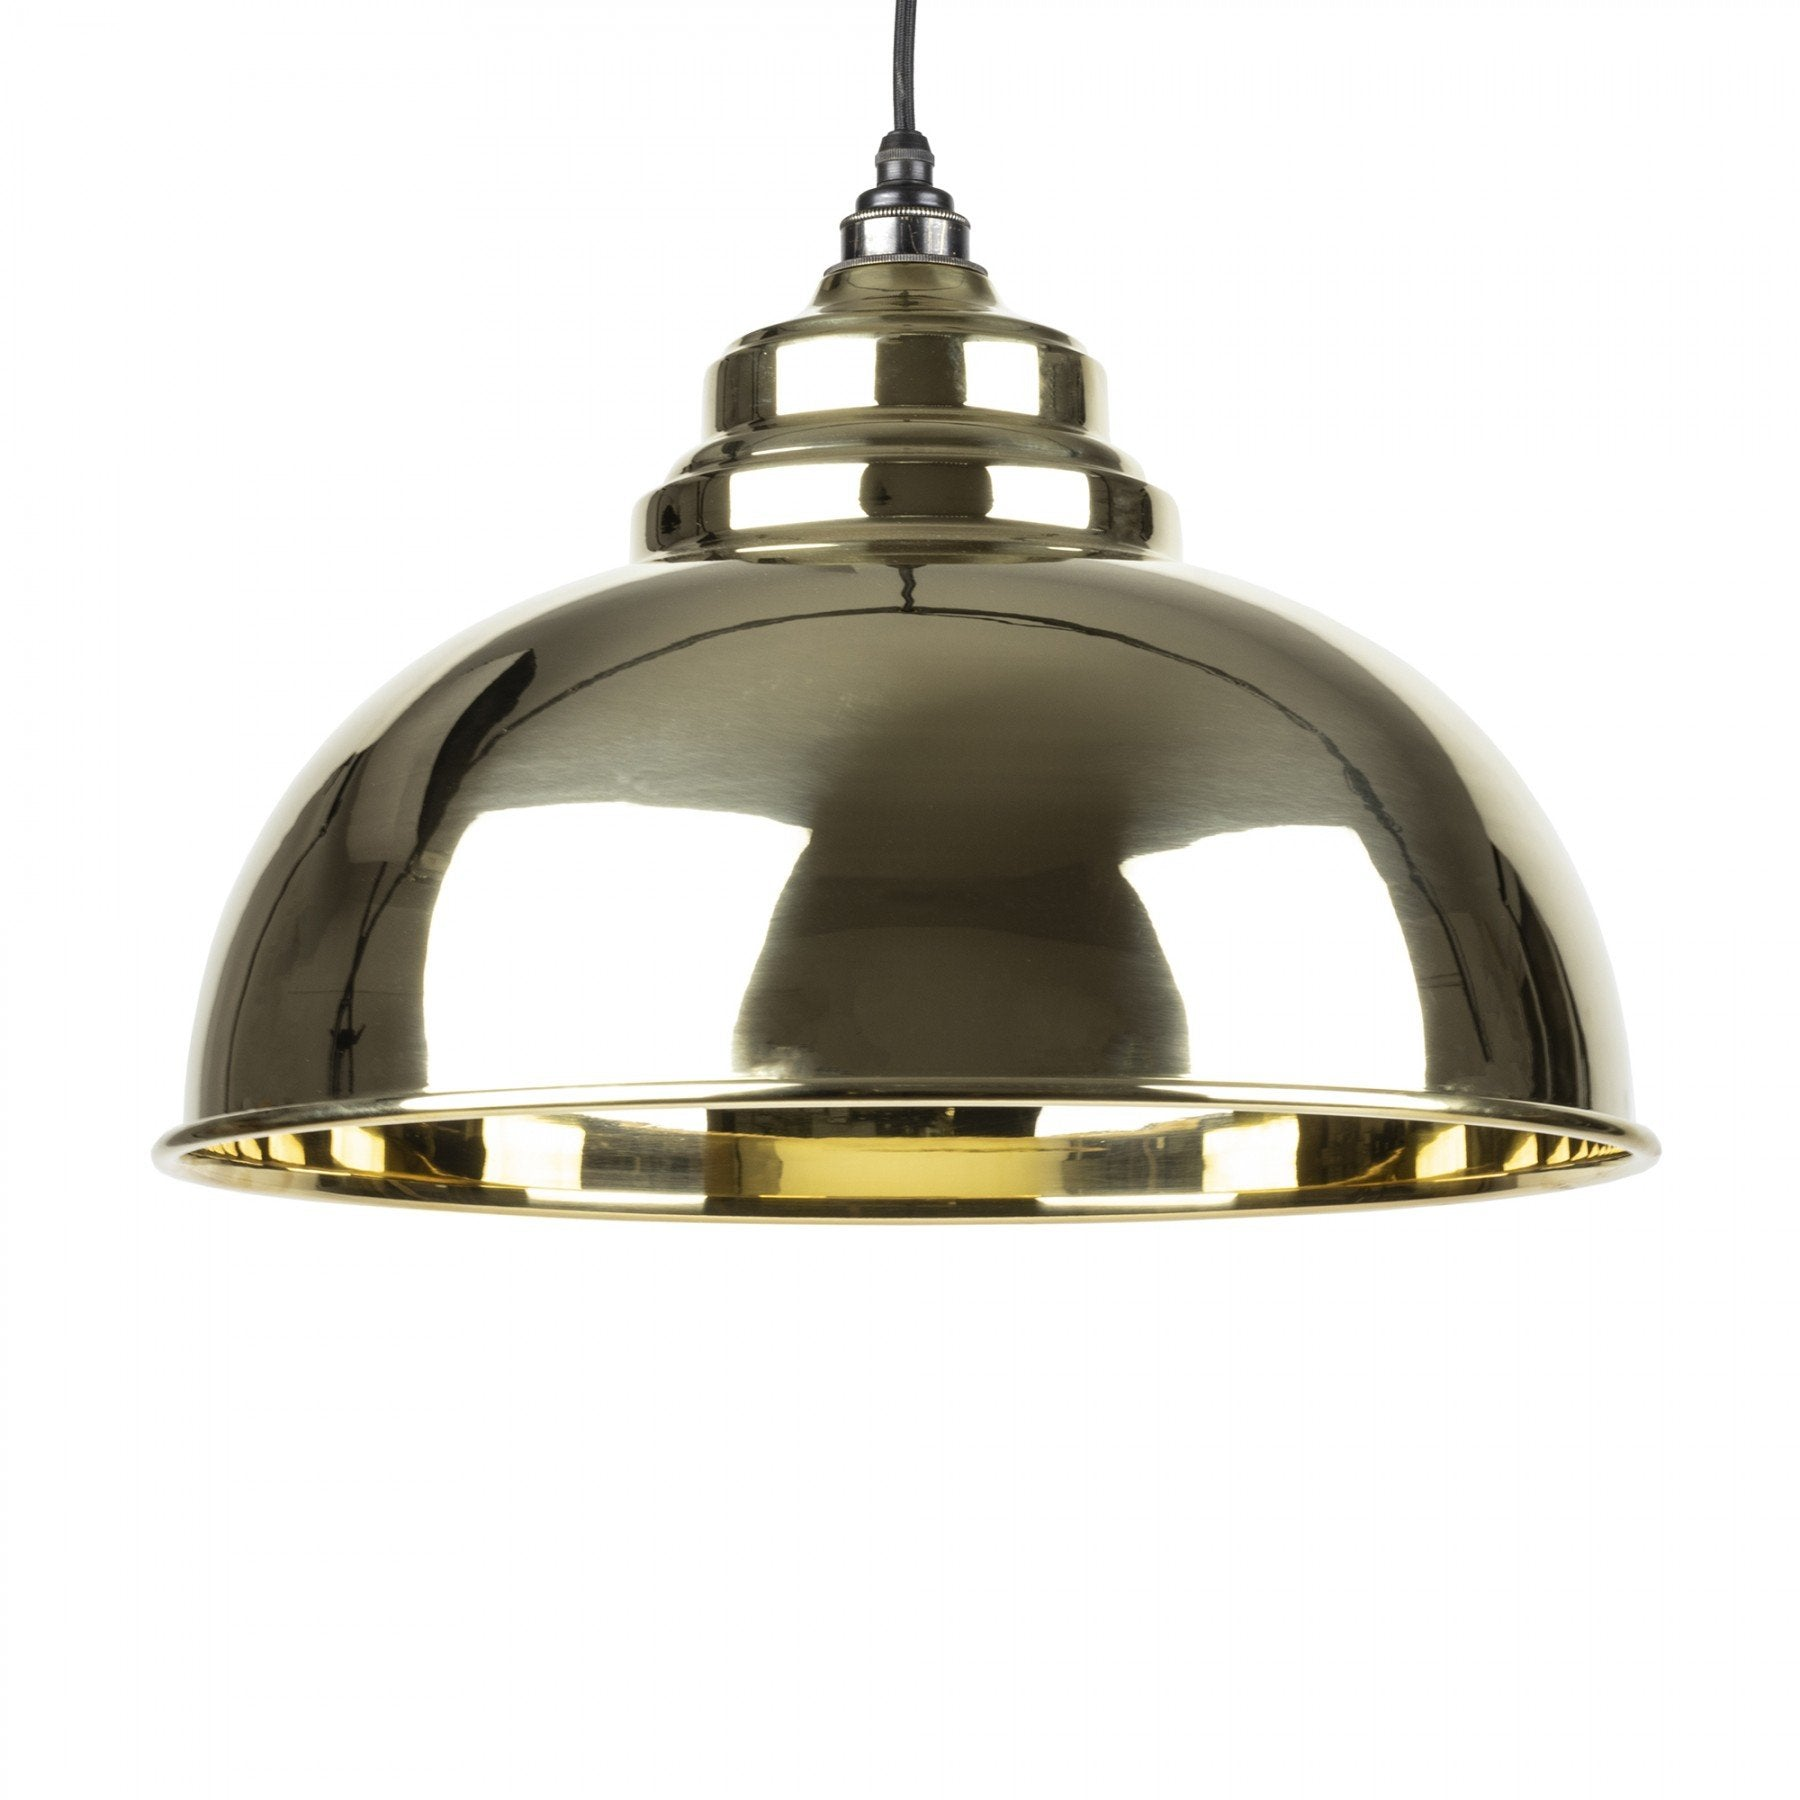 From The Anvil Smooth Brass Interior Harborne Pendant - No.42 Interiors